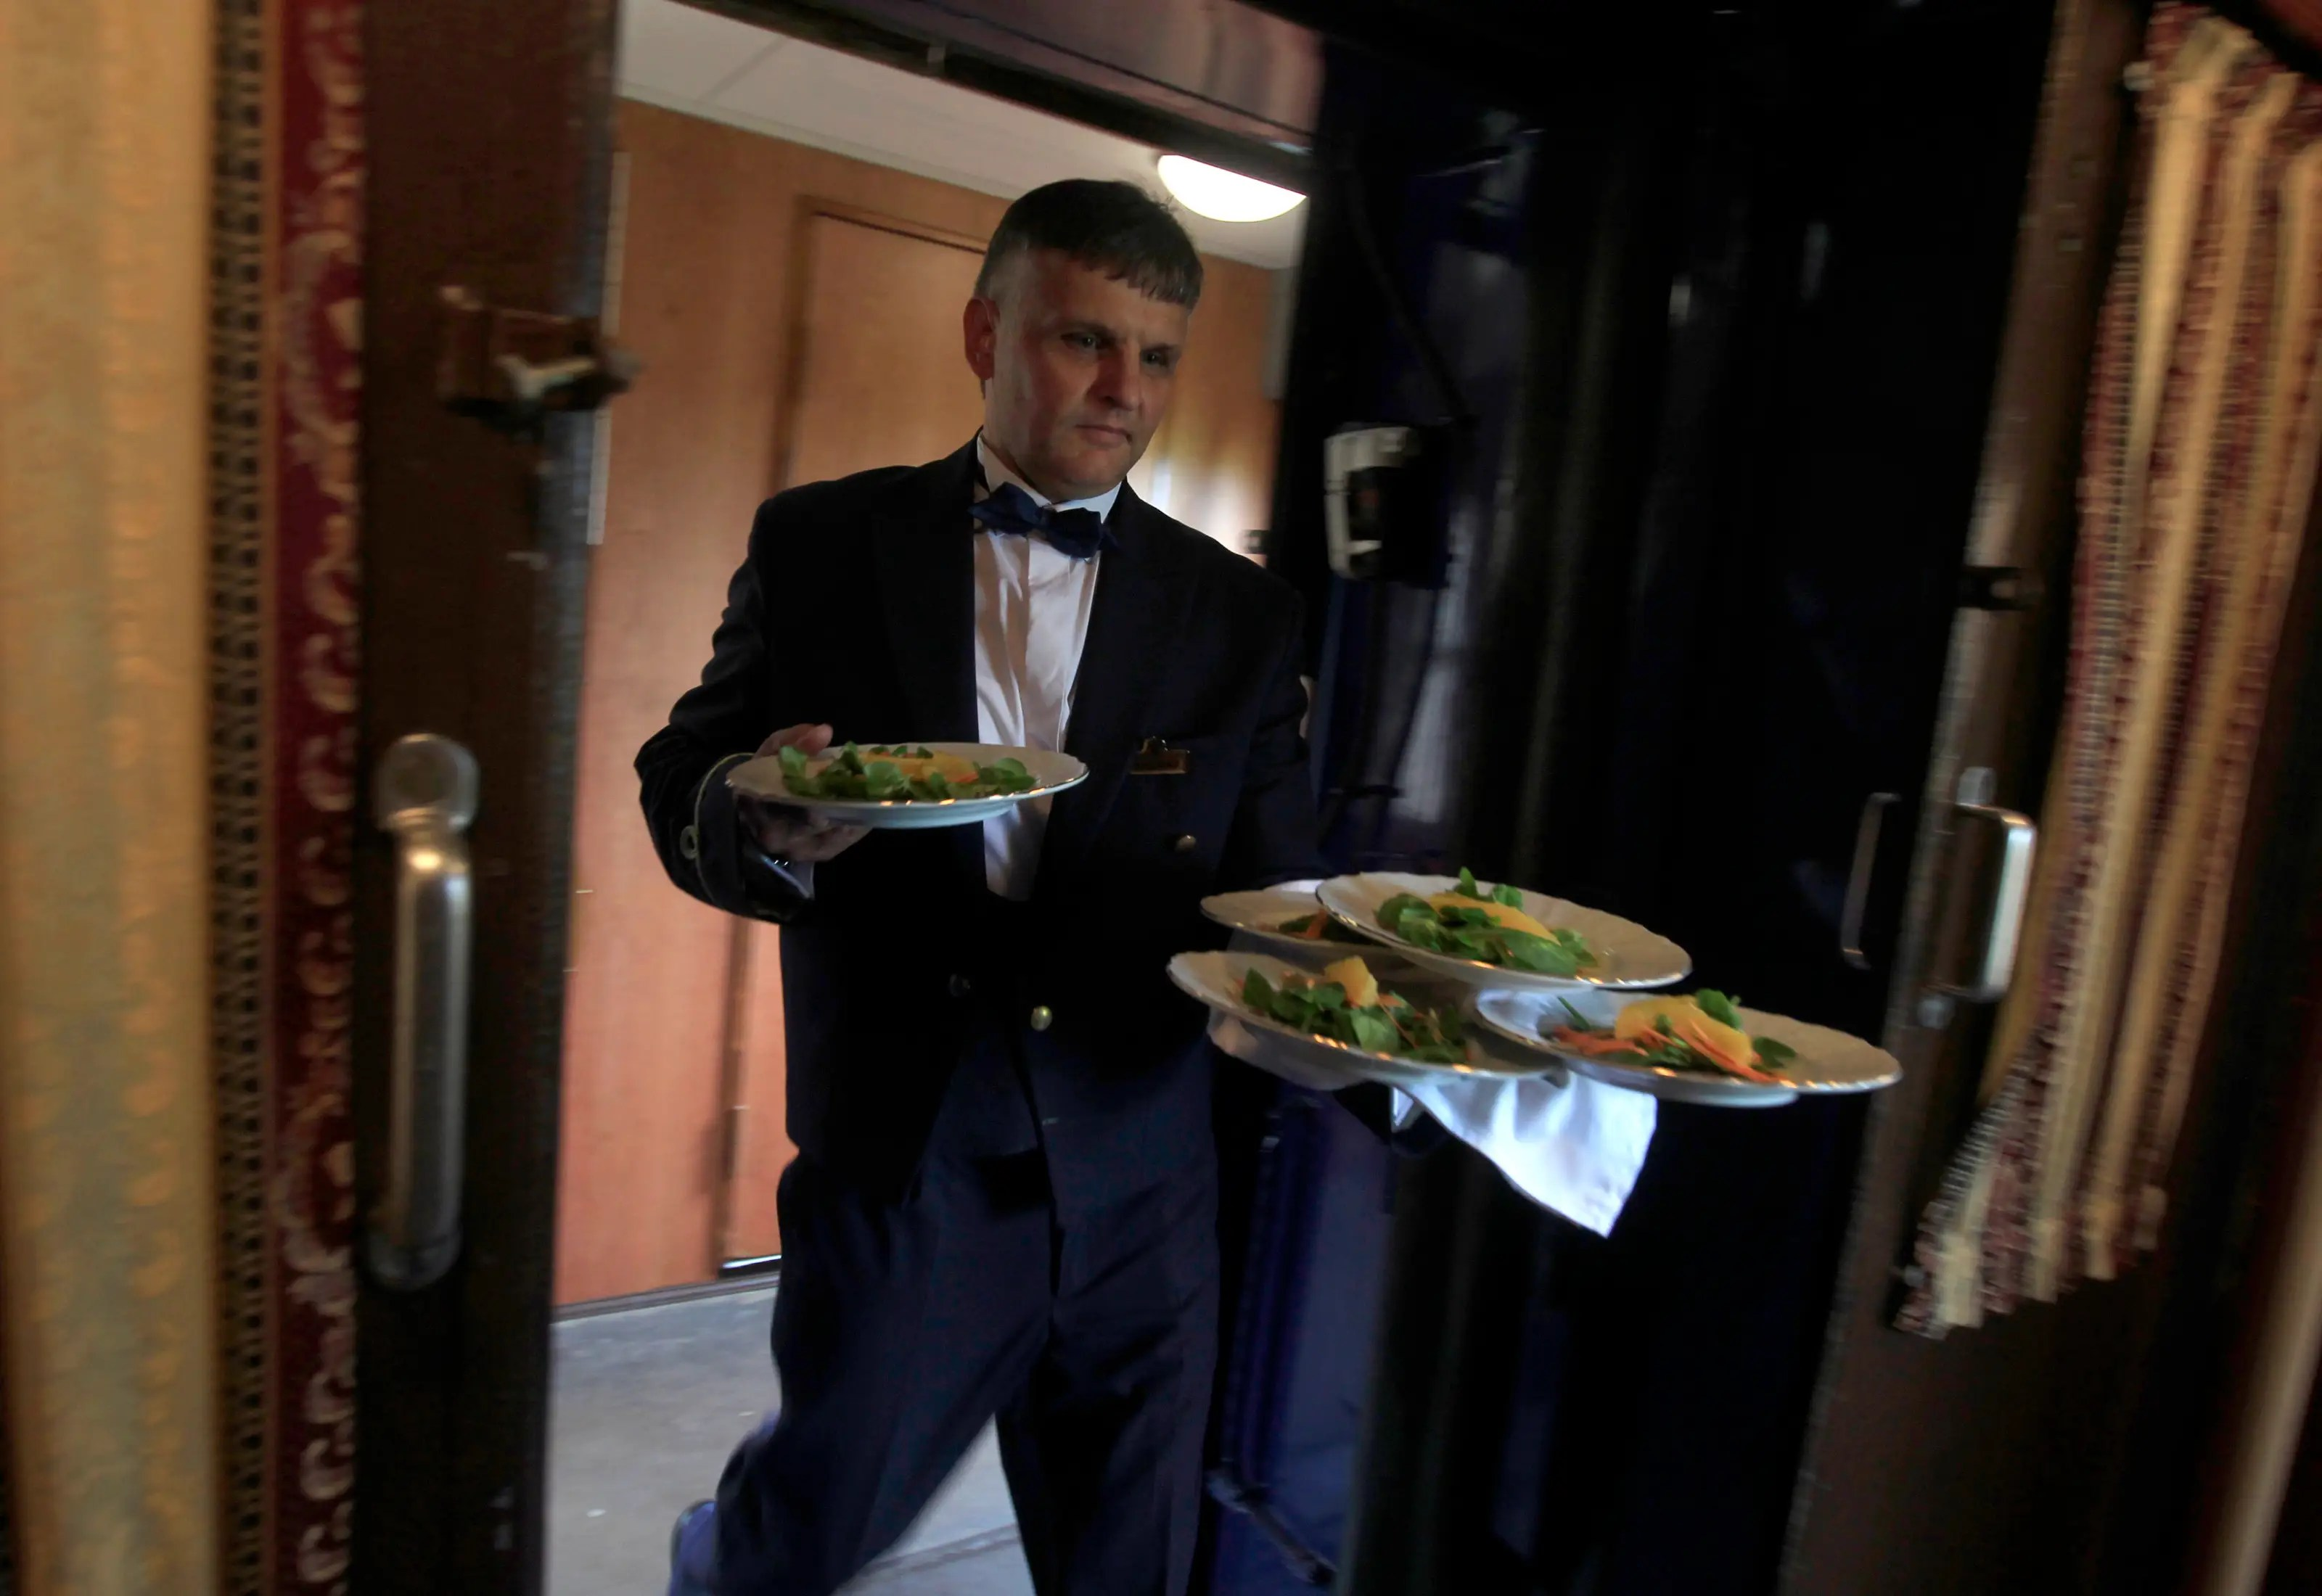 The train also have a full staff of waiters and chefs to accomodate all passenger requests.